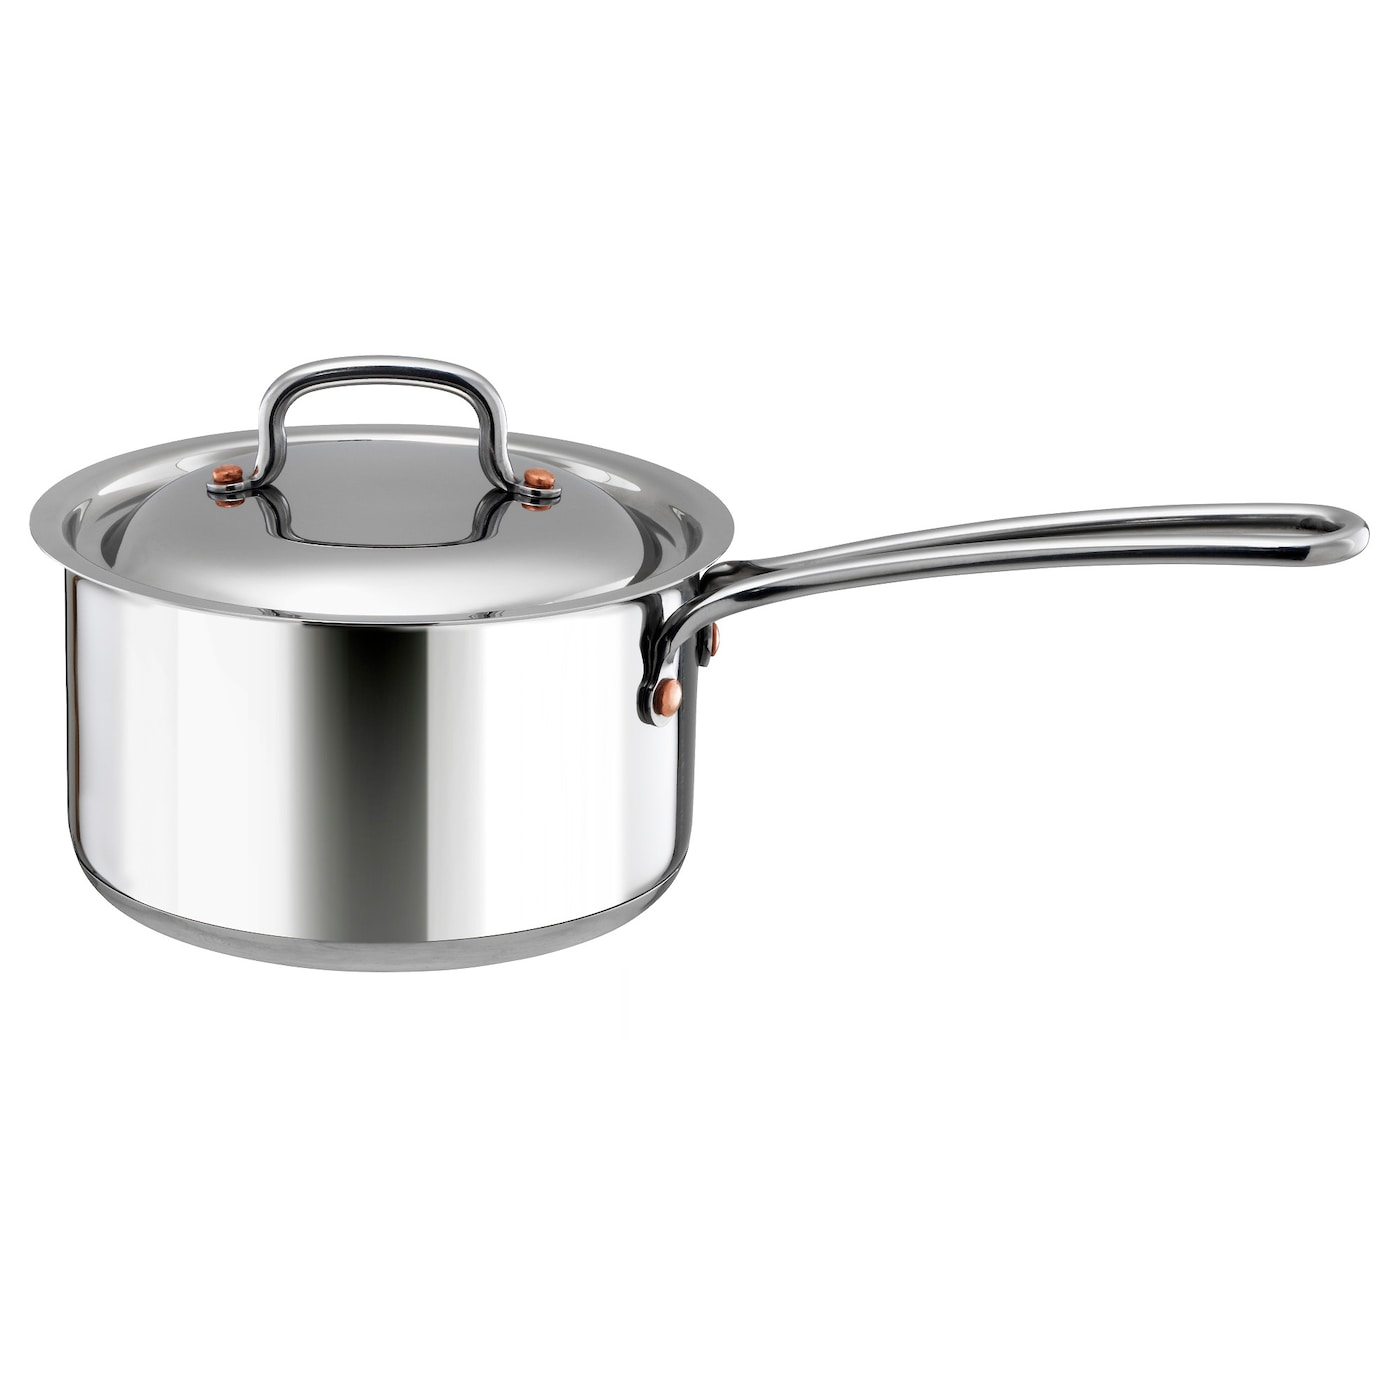 IKEA VARDAGEN saucepan with lid 15 year guarantee. Read about the terms in the guarantee brochure.